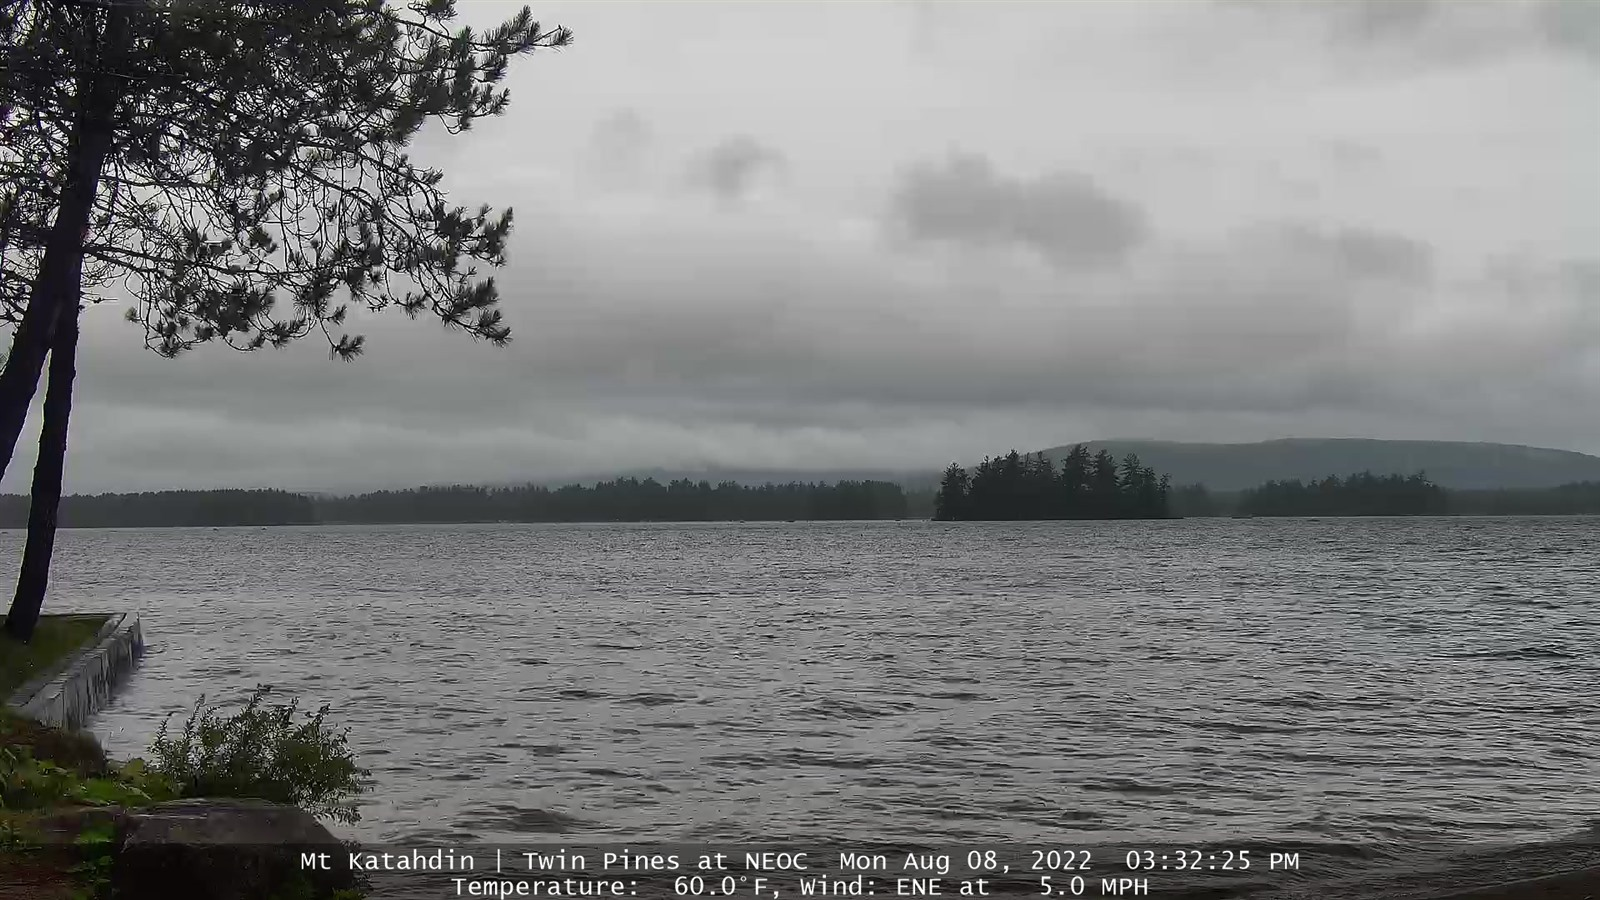 Webcam Millinocket Mt. Katahdin from Twin Pine Camps Live webcamera